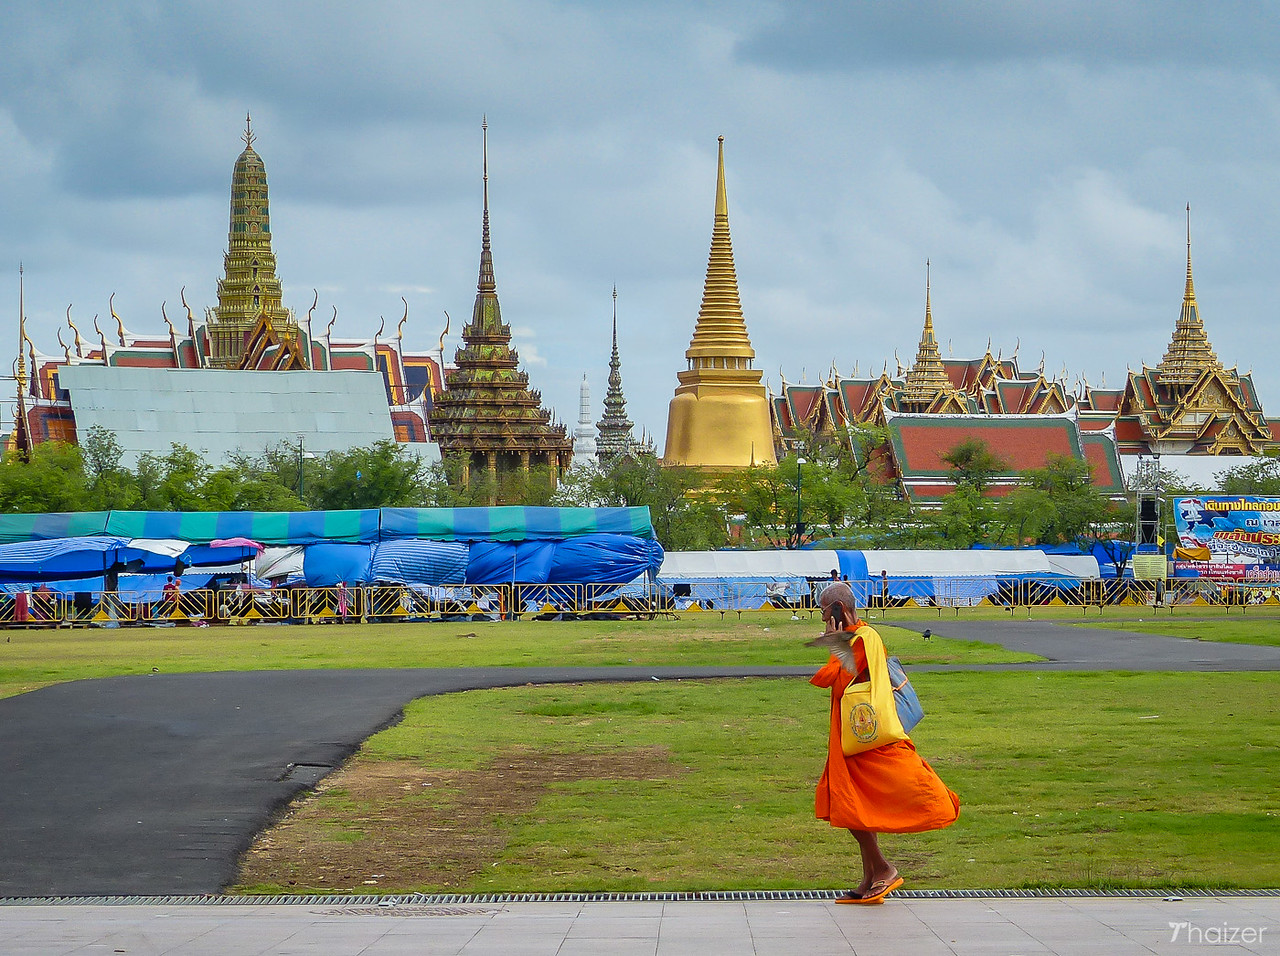 Grand Palace viewed from Sanam Luang